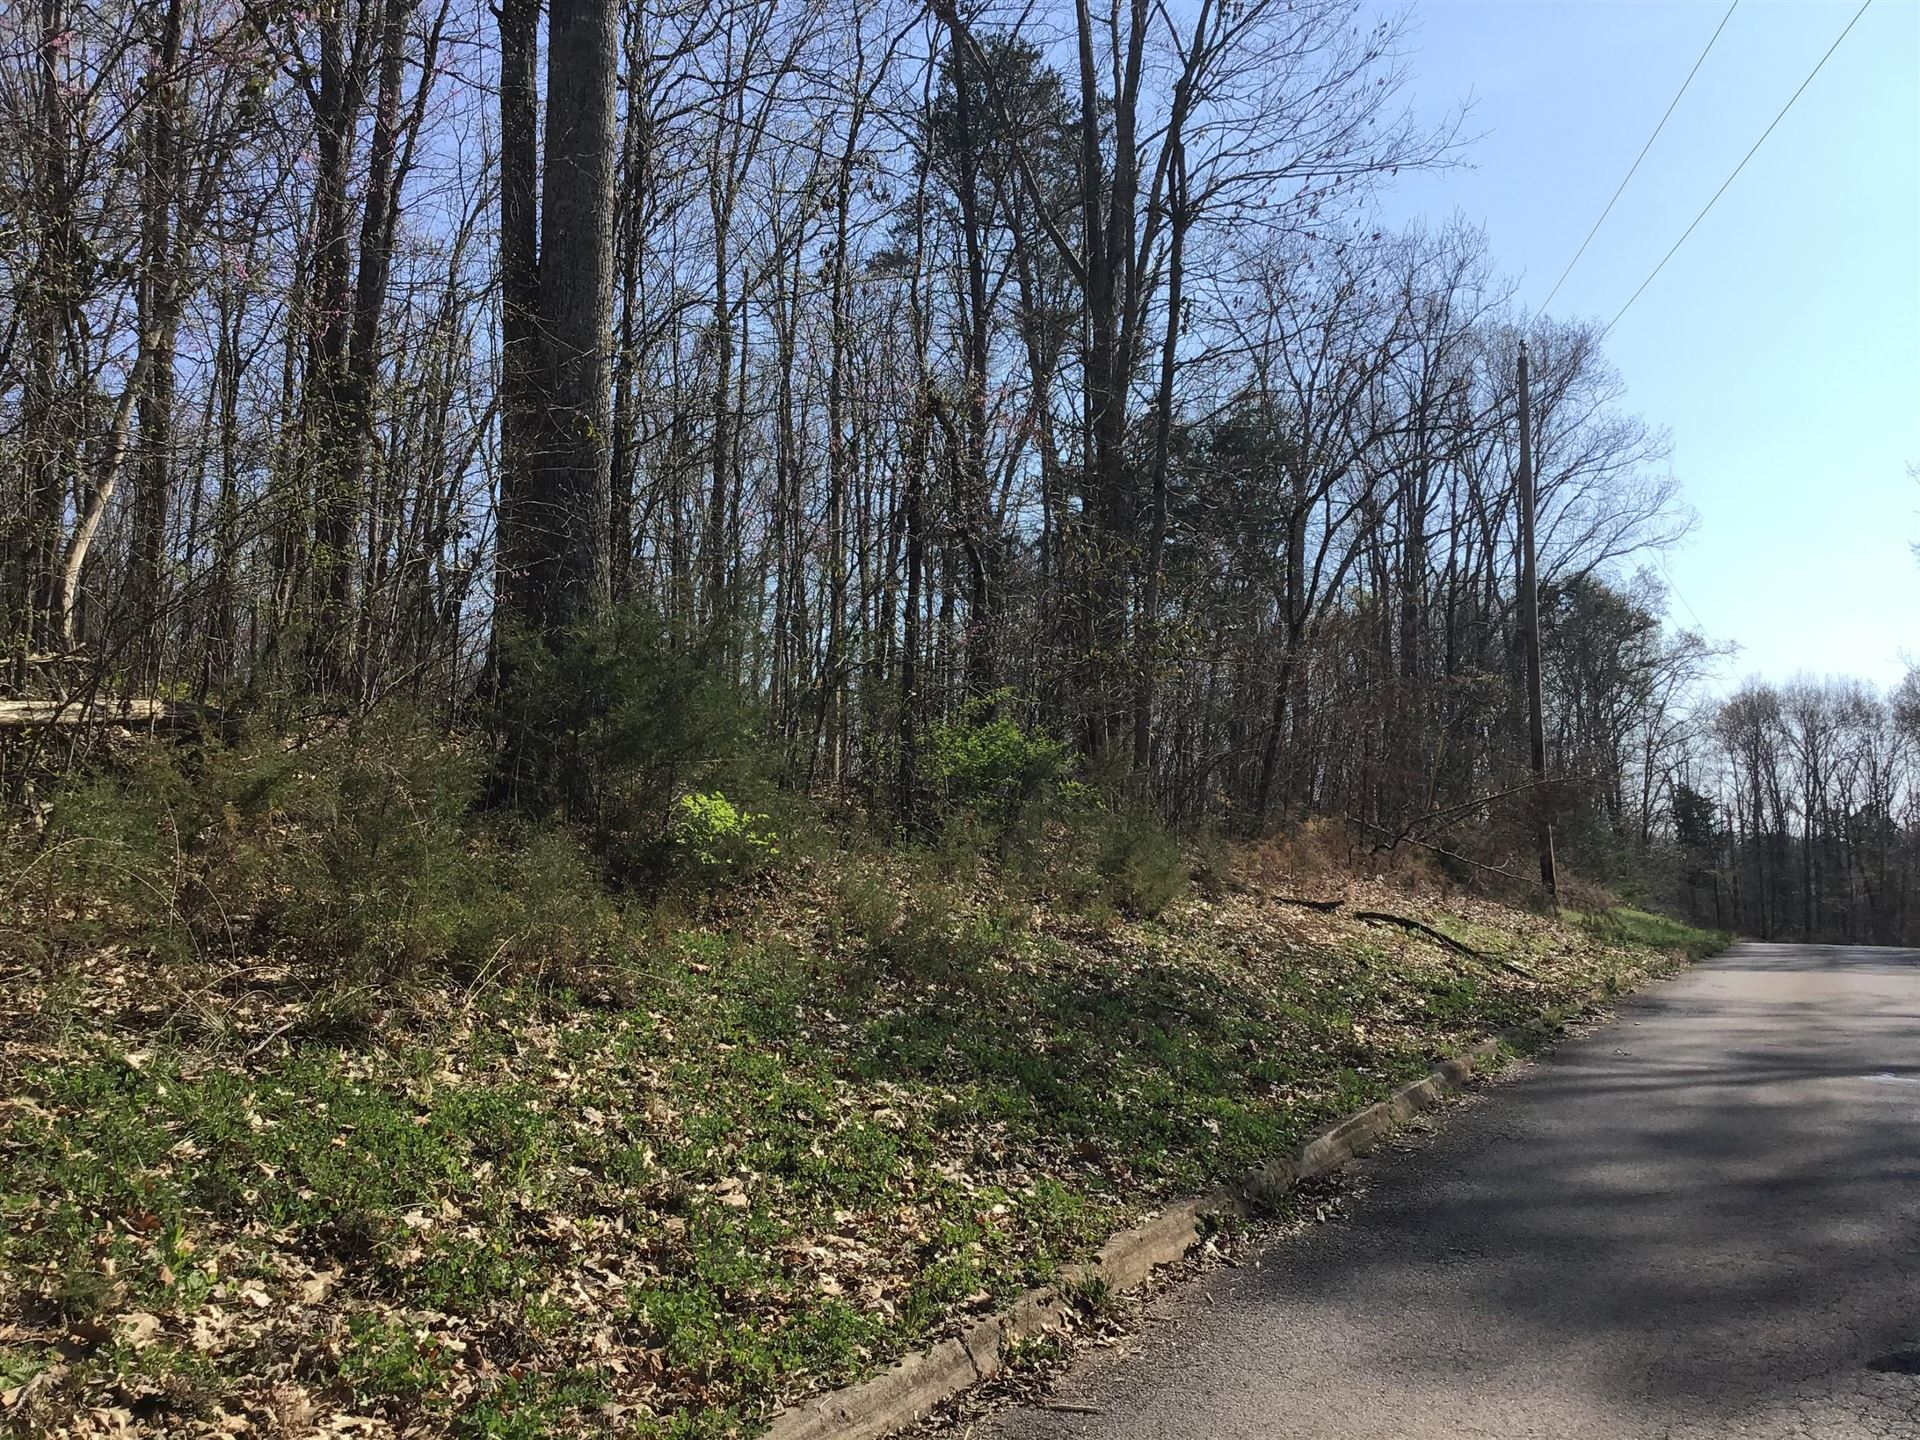 Photo of Lot 64 Secluded River Circle, Parrotsville, TN 37843 (MLS # 288487)